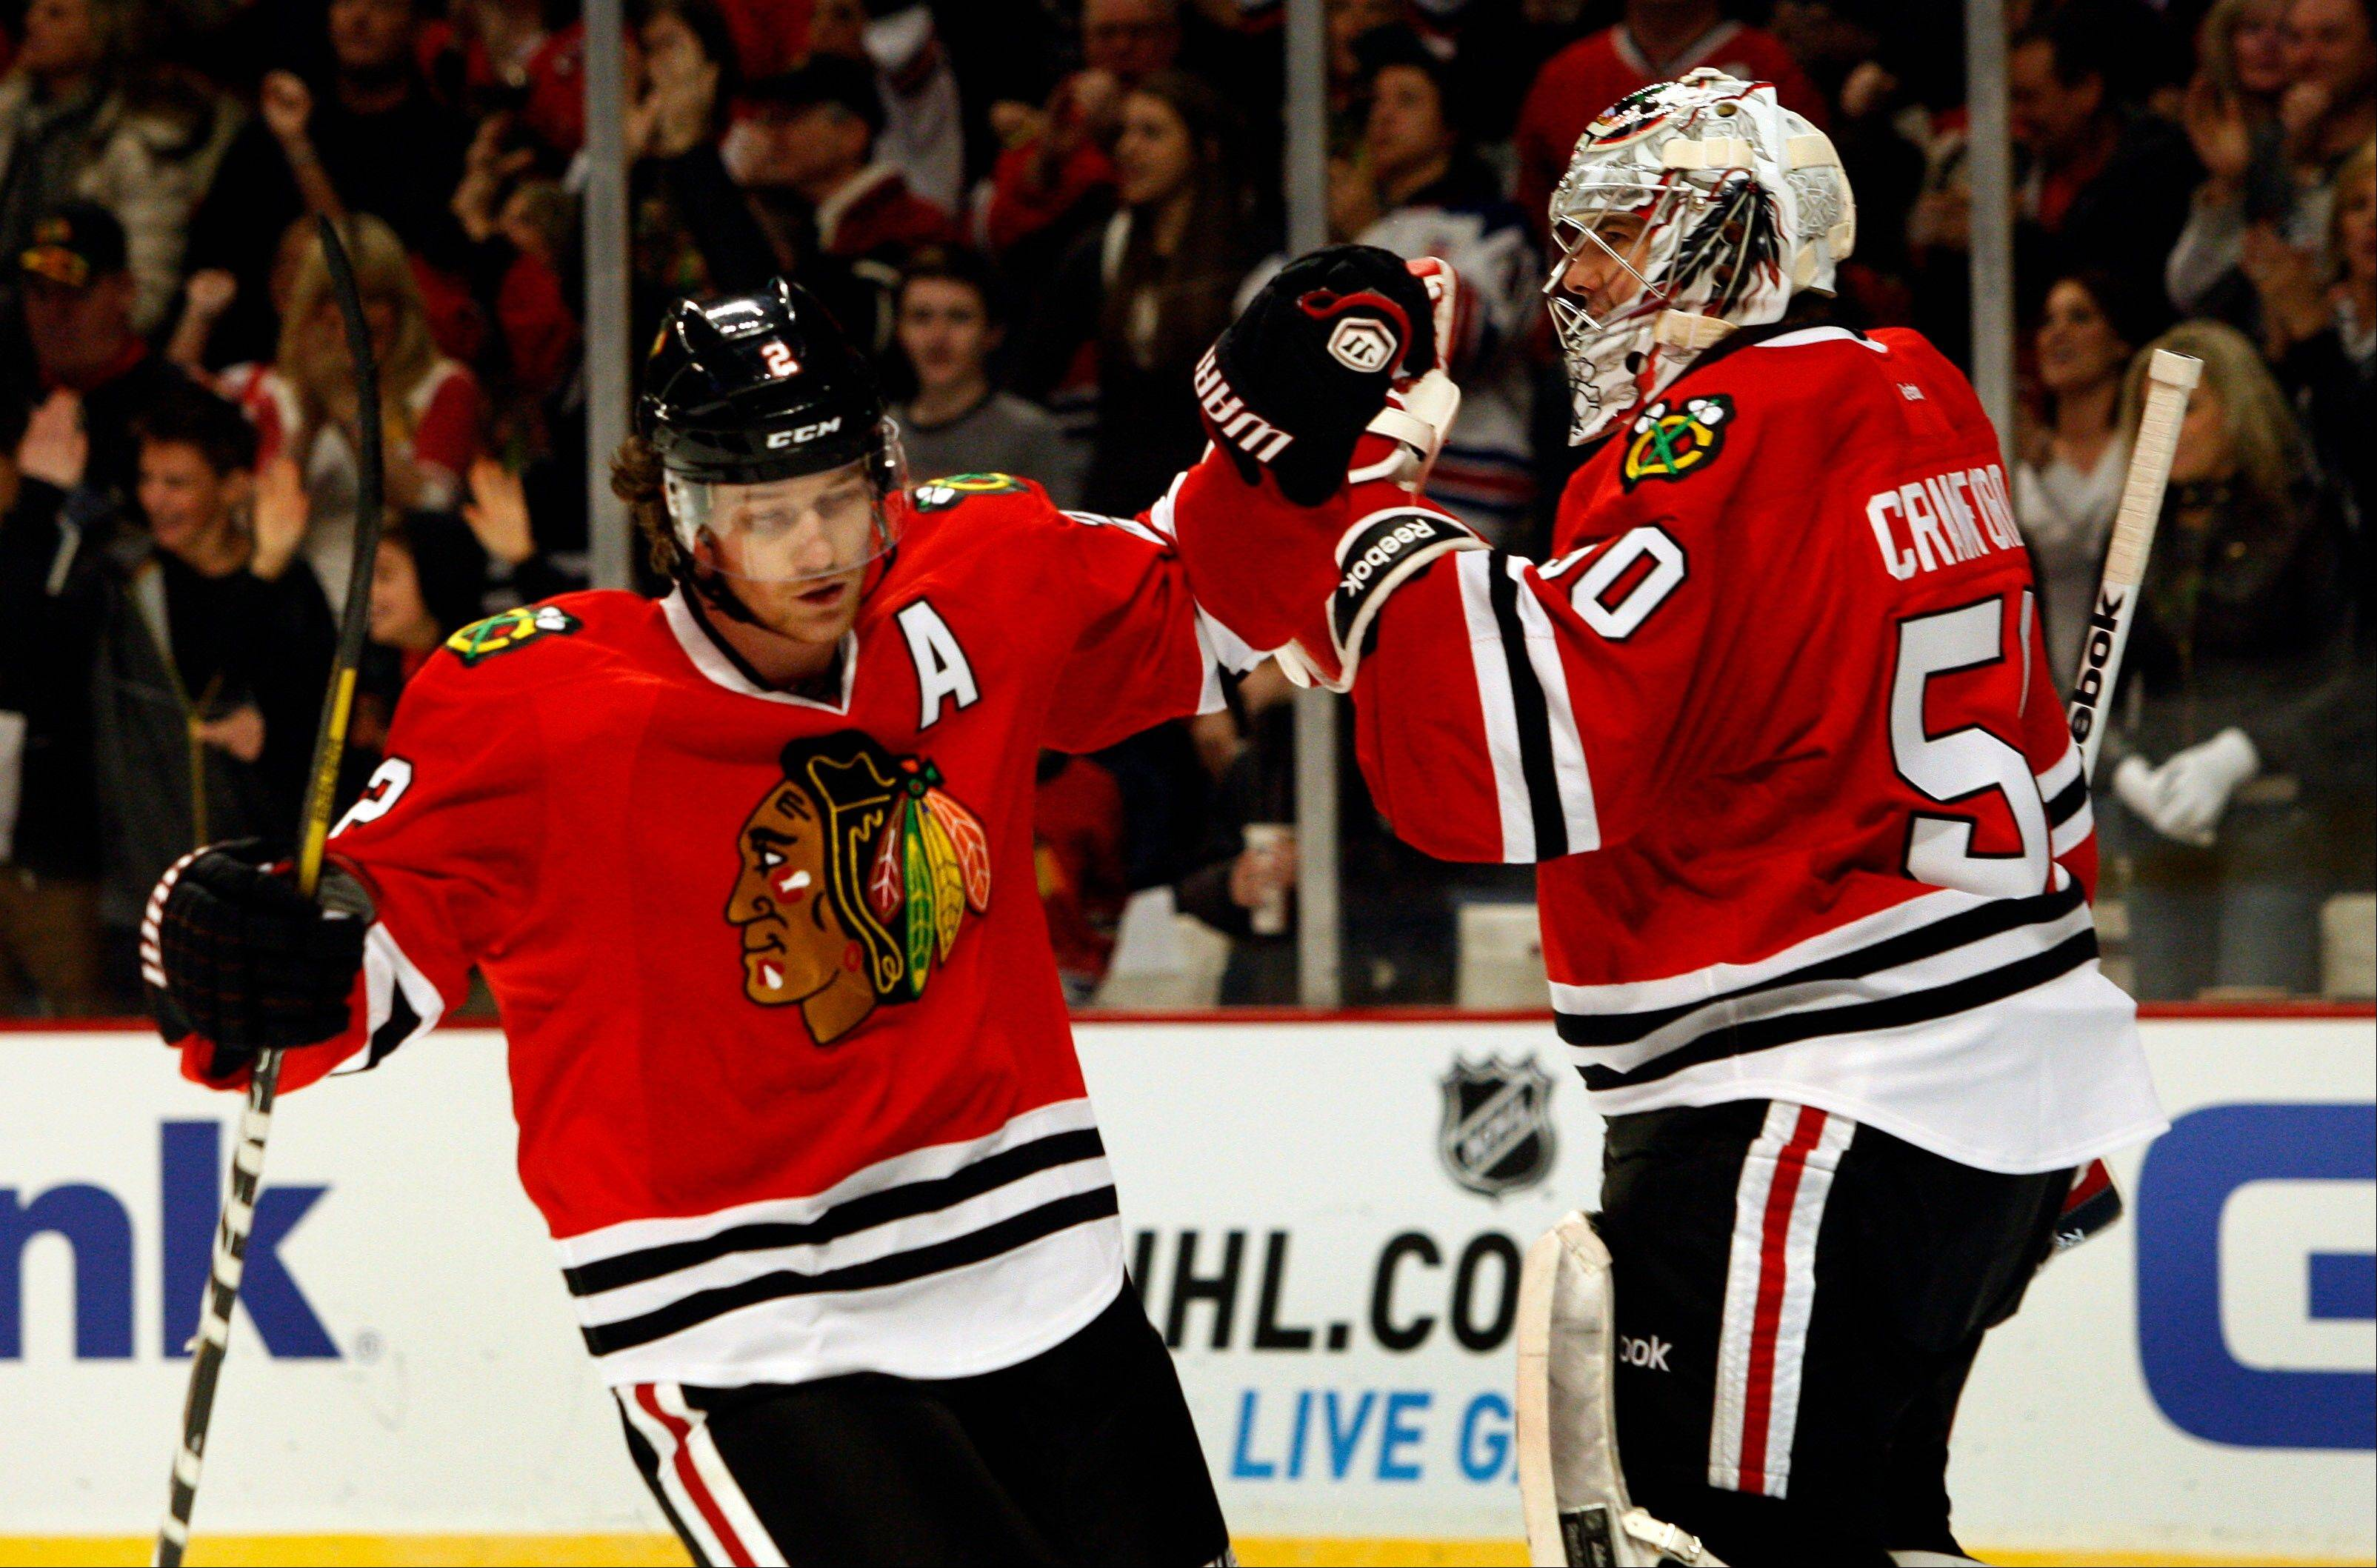 Duncan Keith, left, is congratulated by Blackhawks goalie Corey Crawford in the first period after Keith scored against the Detroit Red Wings during an NHL hockey game in Chicago, Sunday, Jan. 27, 2013.